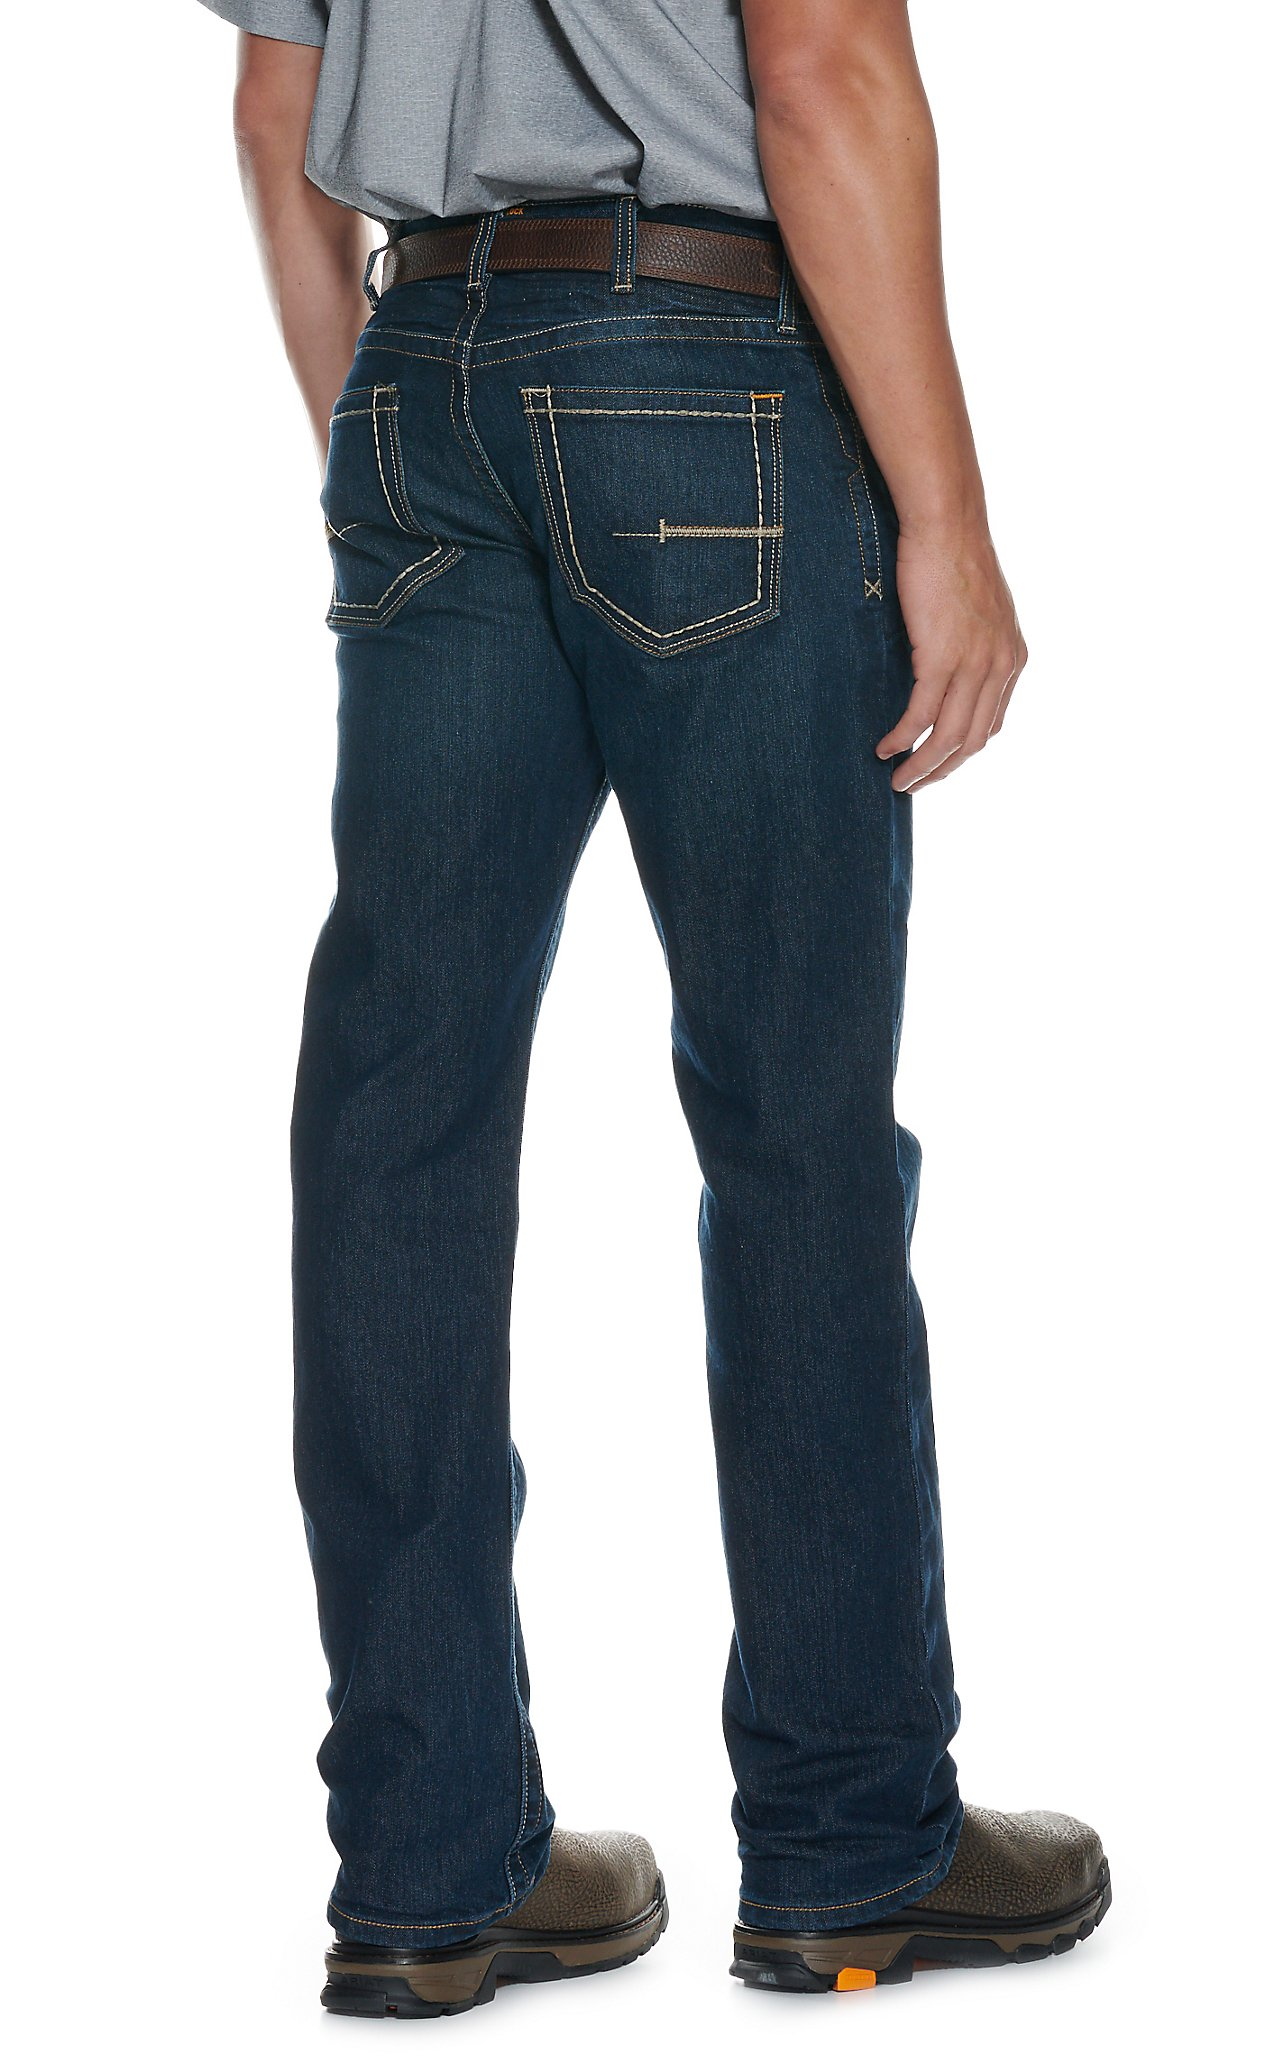 Western Jeans and Western Pants for Men | Cavender's